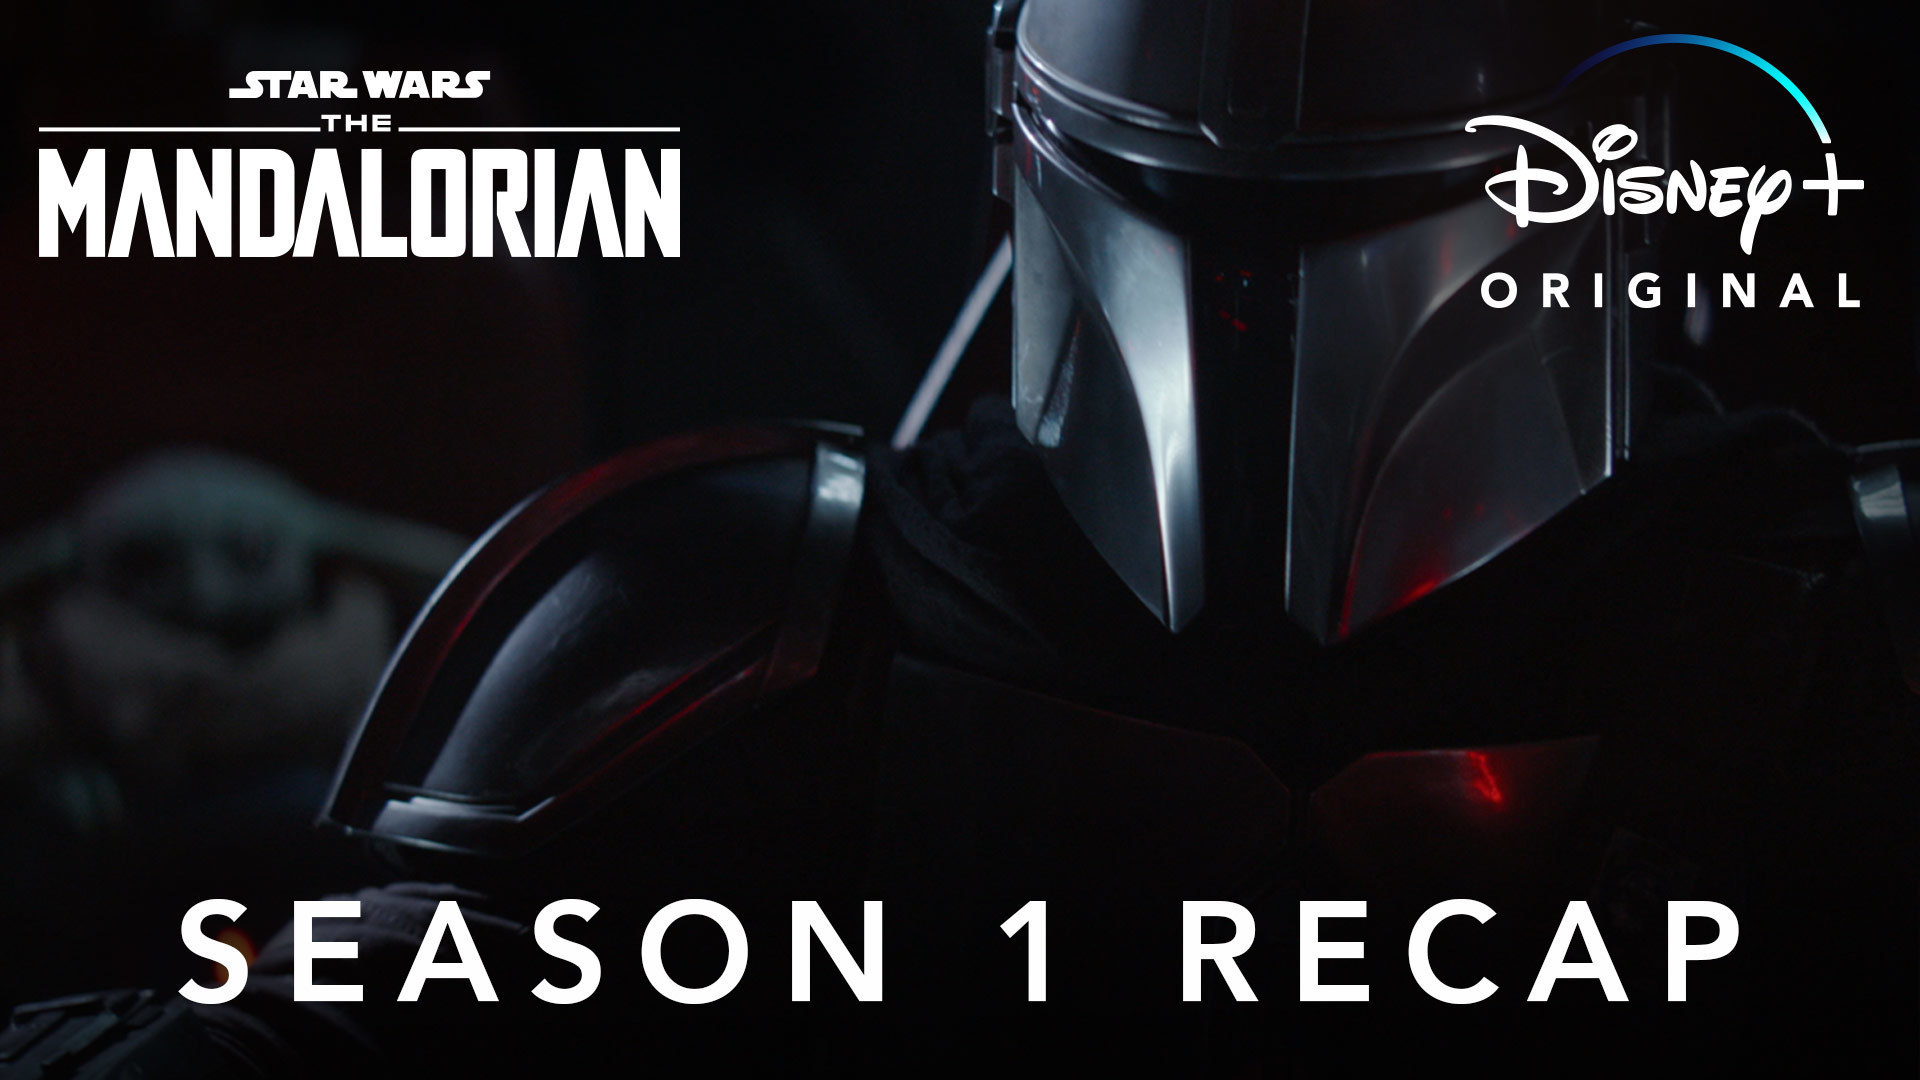 Season 1 Recap | The Mandalorian